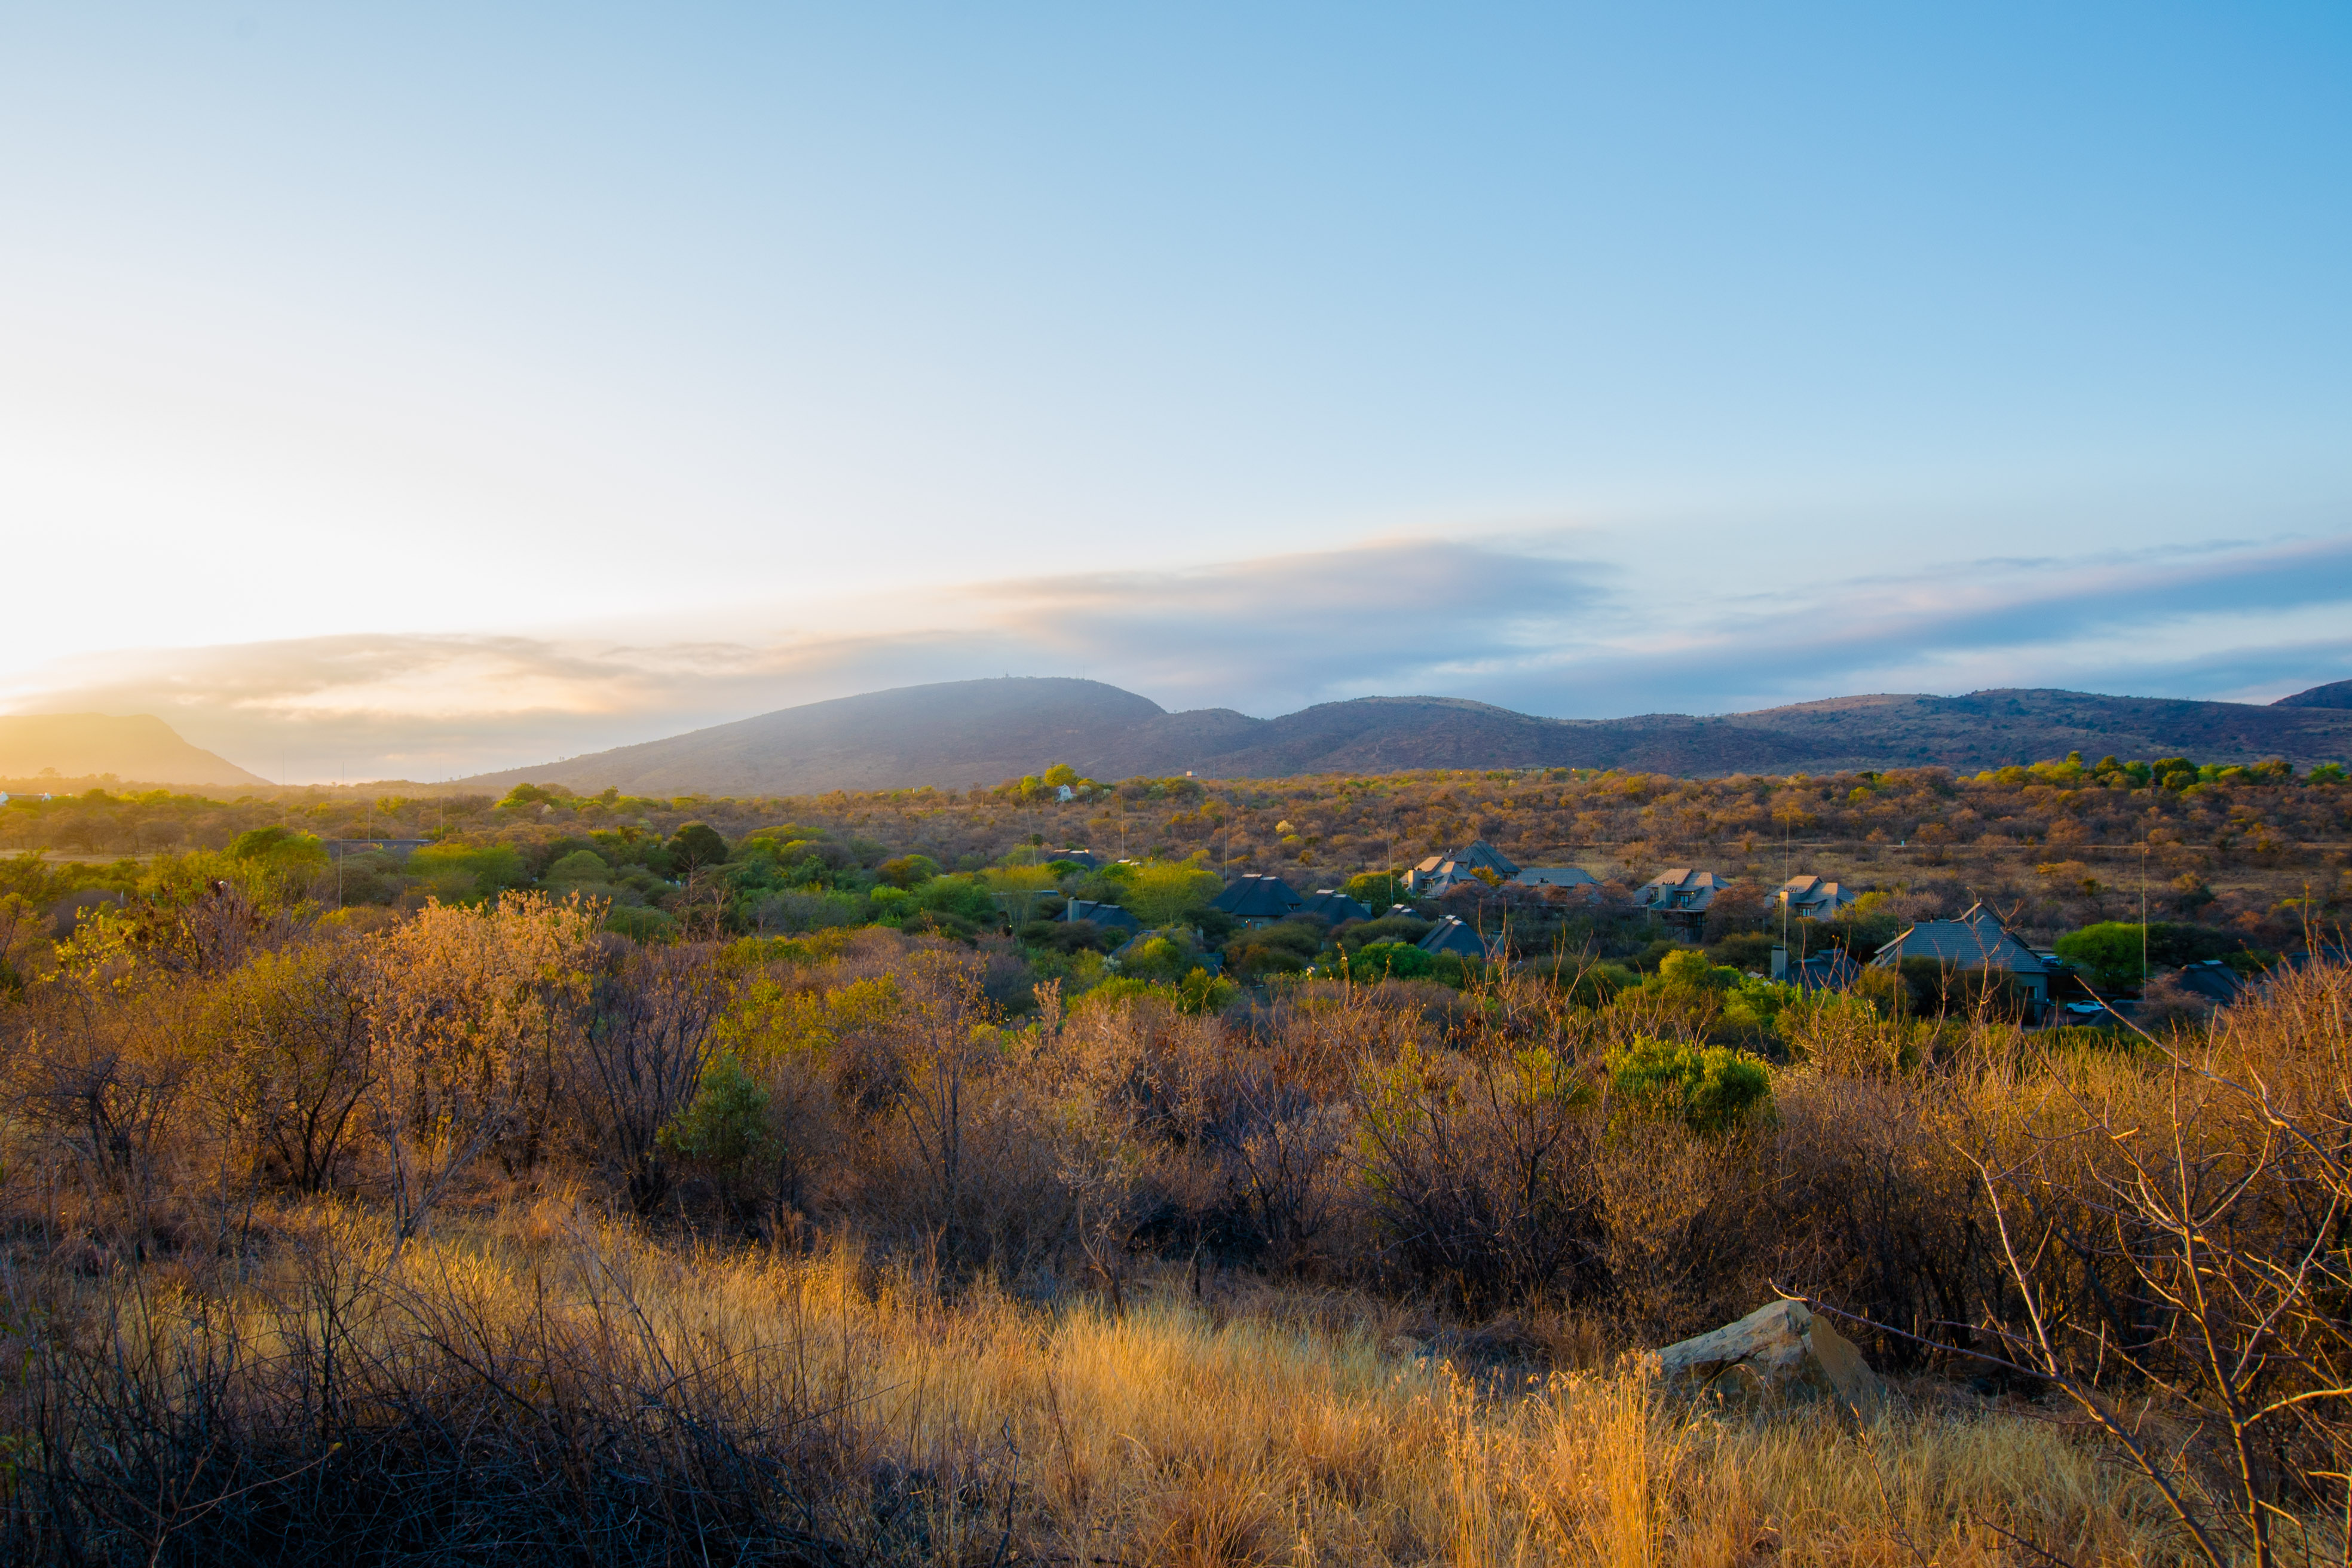 Situated in the northern slopes of the Magaliesberg Mountains